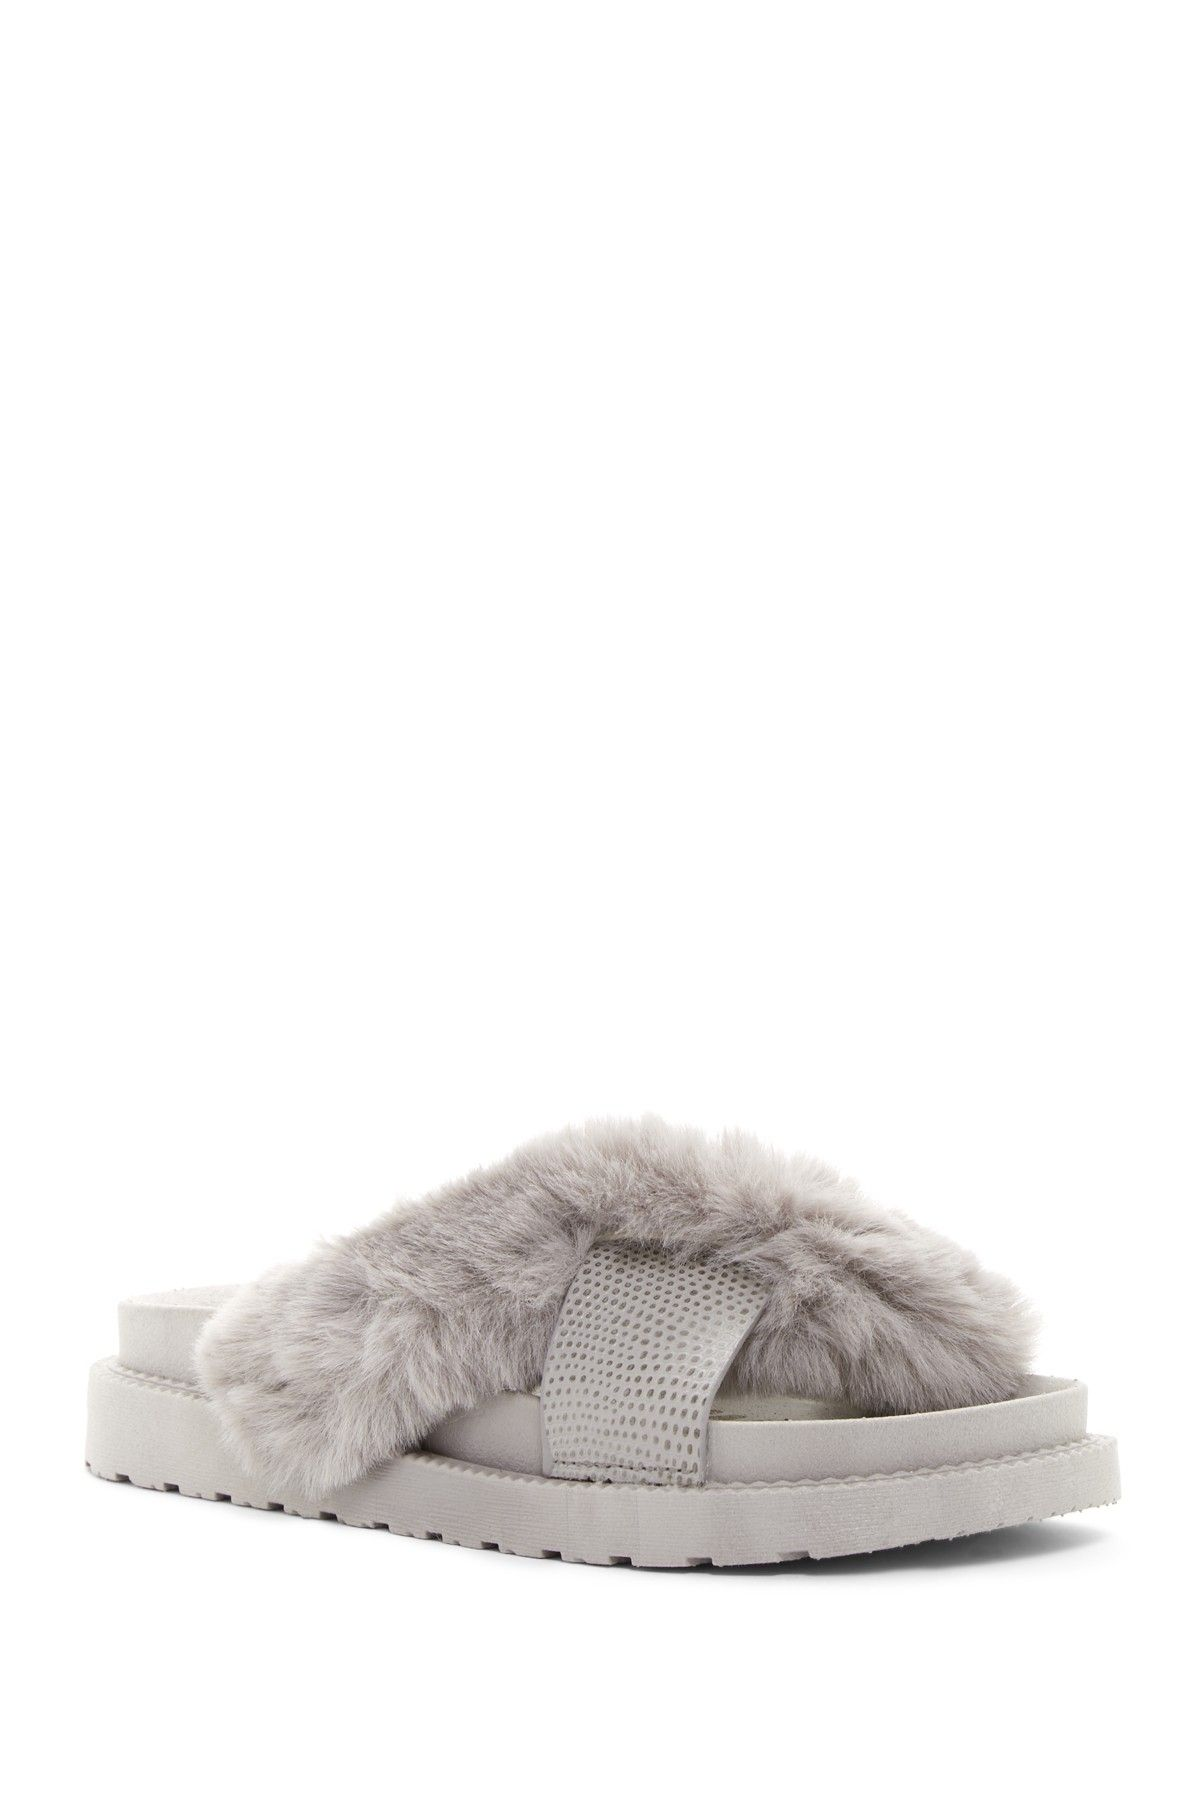 Bianca Faux Fur Slide Sandal cheap sale outlet locations pay with paypal for sale release dates for sale clearance clearance VuzkTIh3q0